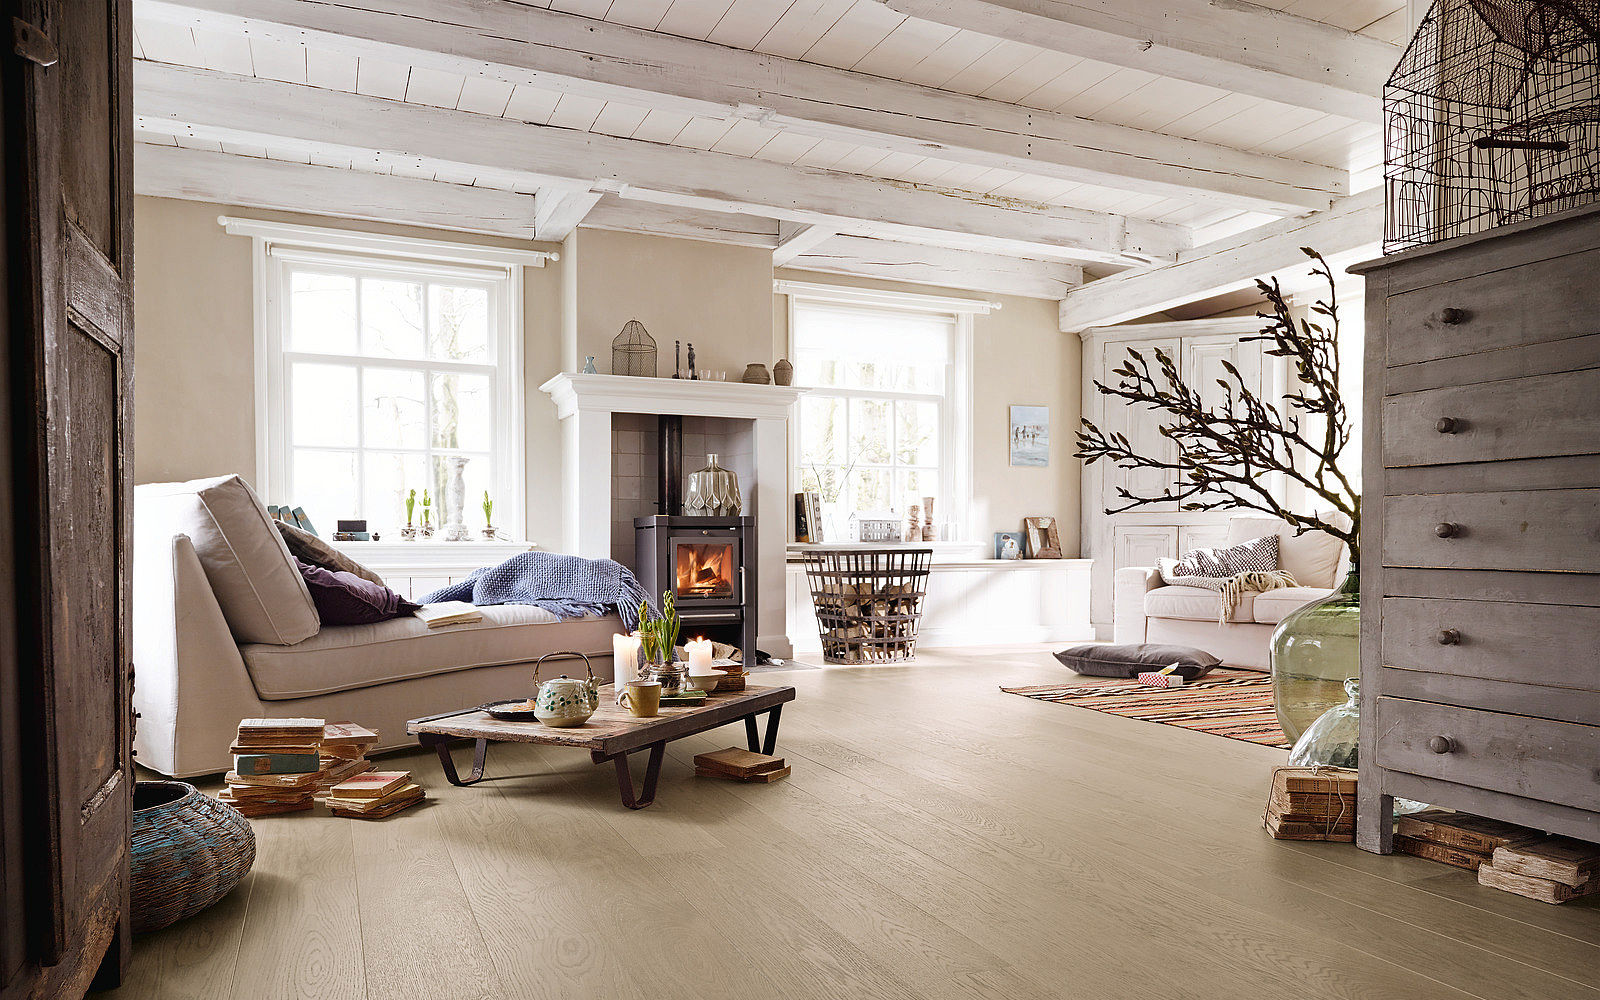 ... Trends In Home Flooring According To Industry Experts Scott Humphrey,  Chief Executive Of The World Floor Covering Association And Michael Martin,  ...